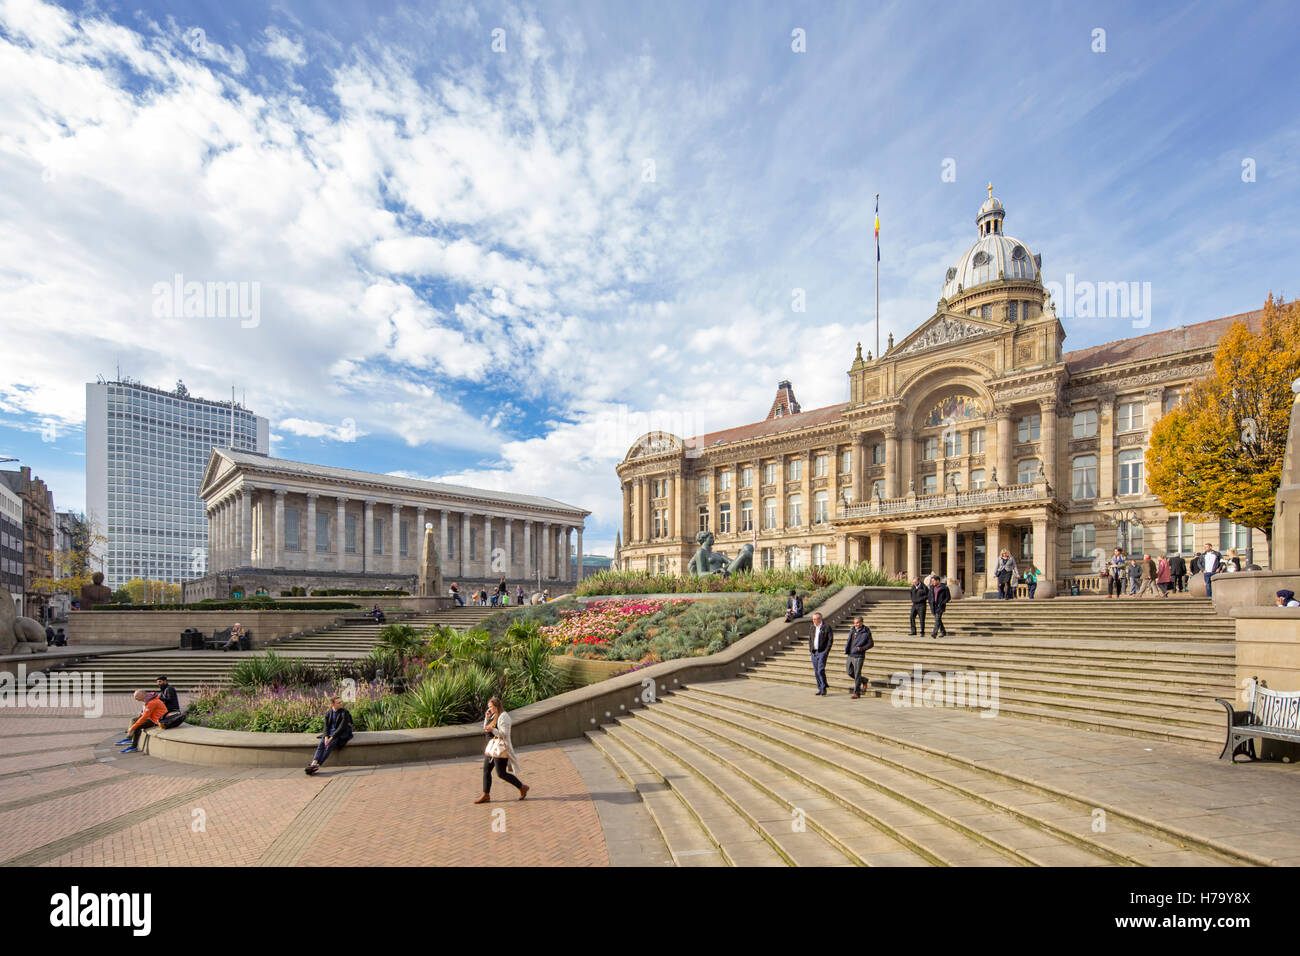 Victoria Square and the Council House building, Birmingham City Centre, Birmingham, England, UK - Stock Image